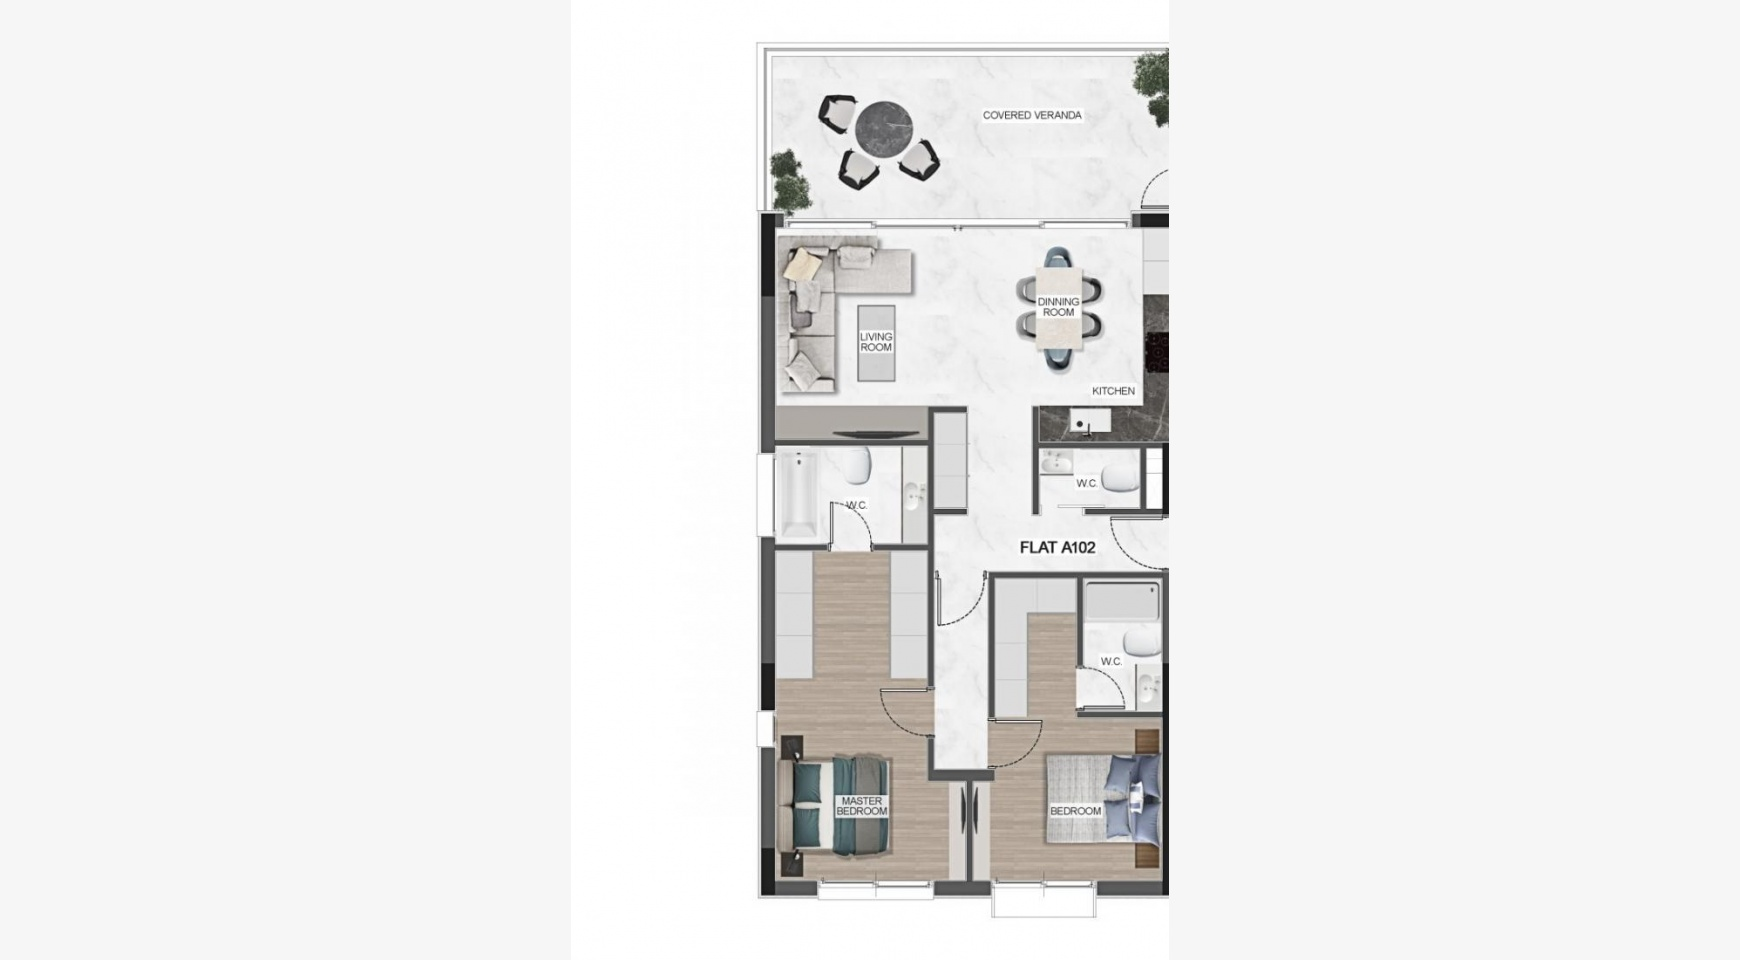 Urban City Residences, Block A. New Spacious 2 Bedroom Apartment 202 in the City Centre - 42